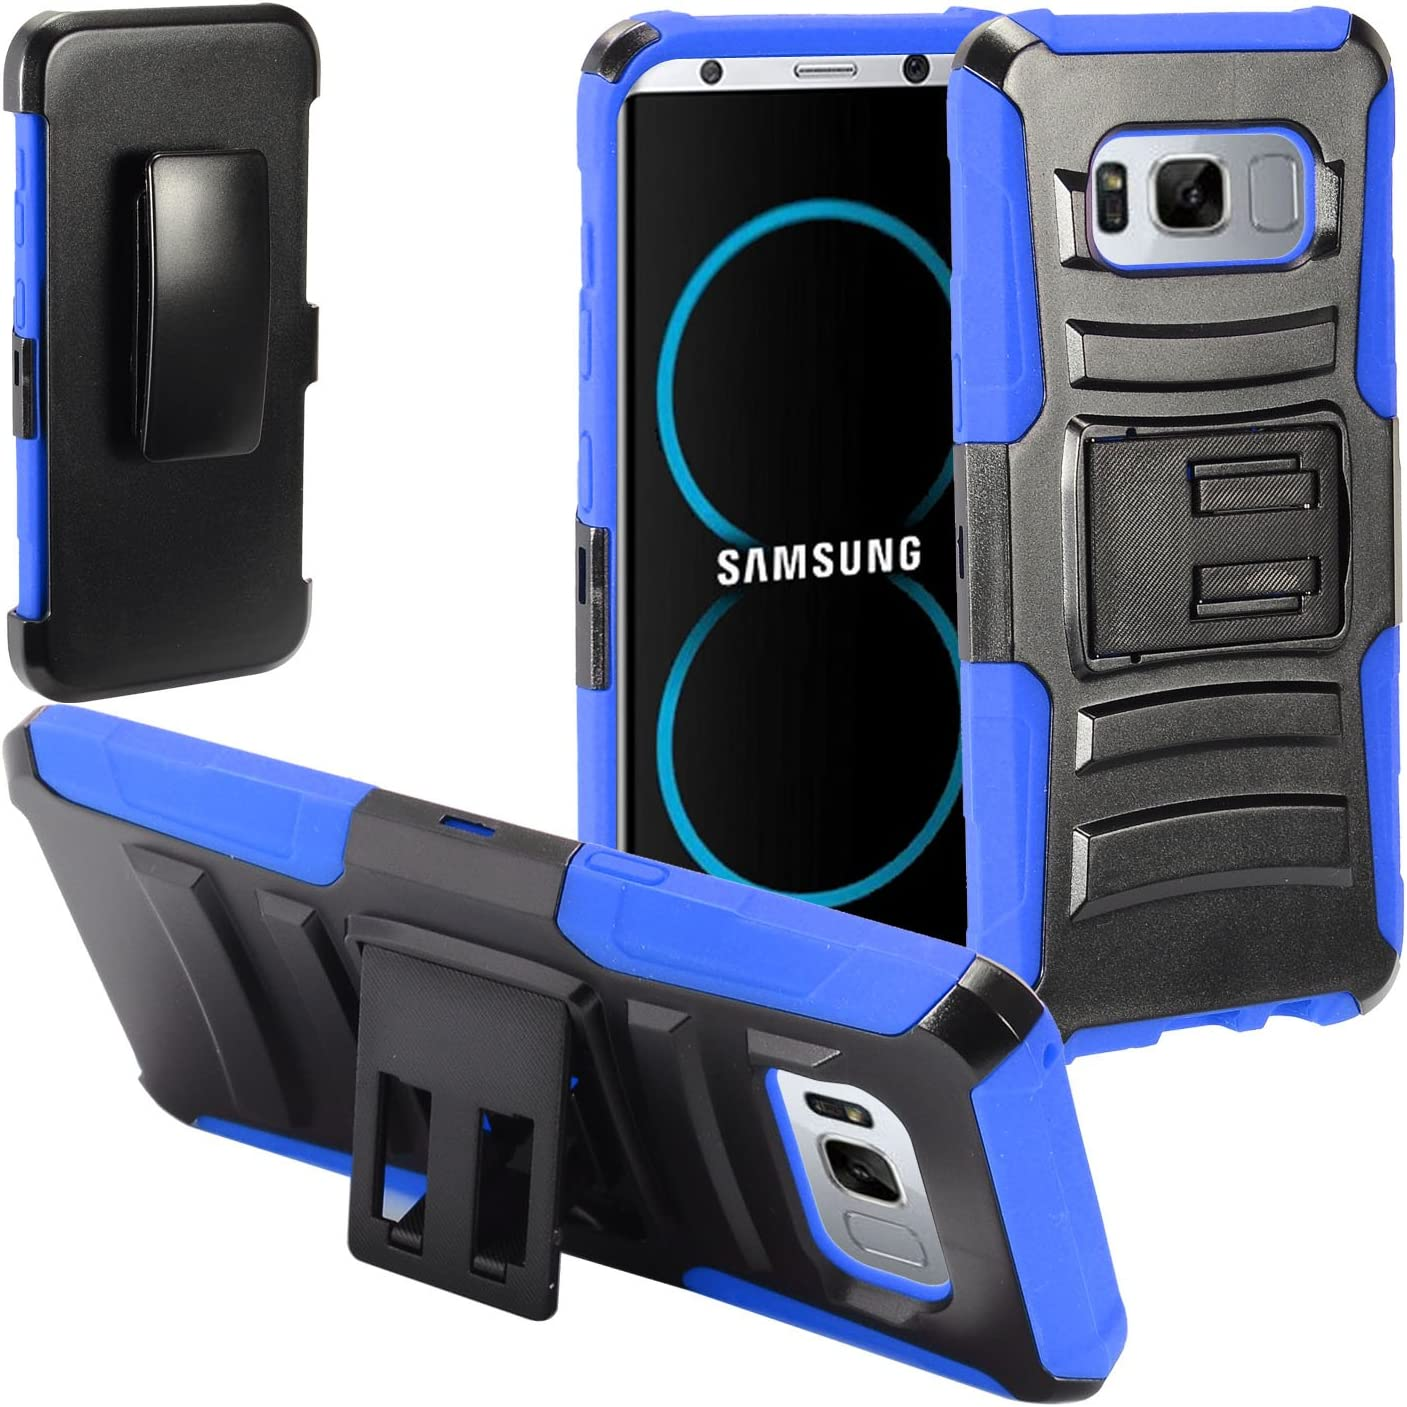 Eaglecell - Compatible with Samsung Galaxy S8 Plus, S8+ SM-G955 - Hybrid Case w/Stand/Belt Clip Holster- CV1 Blue